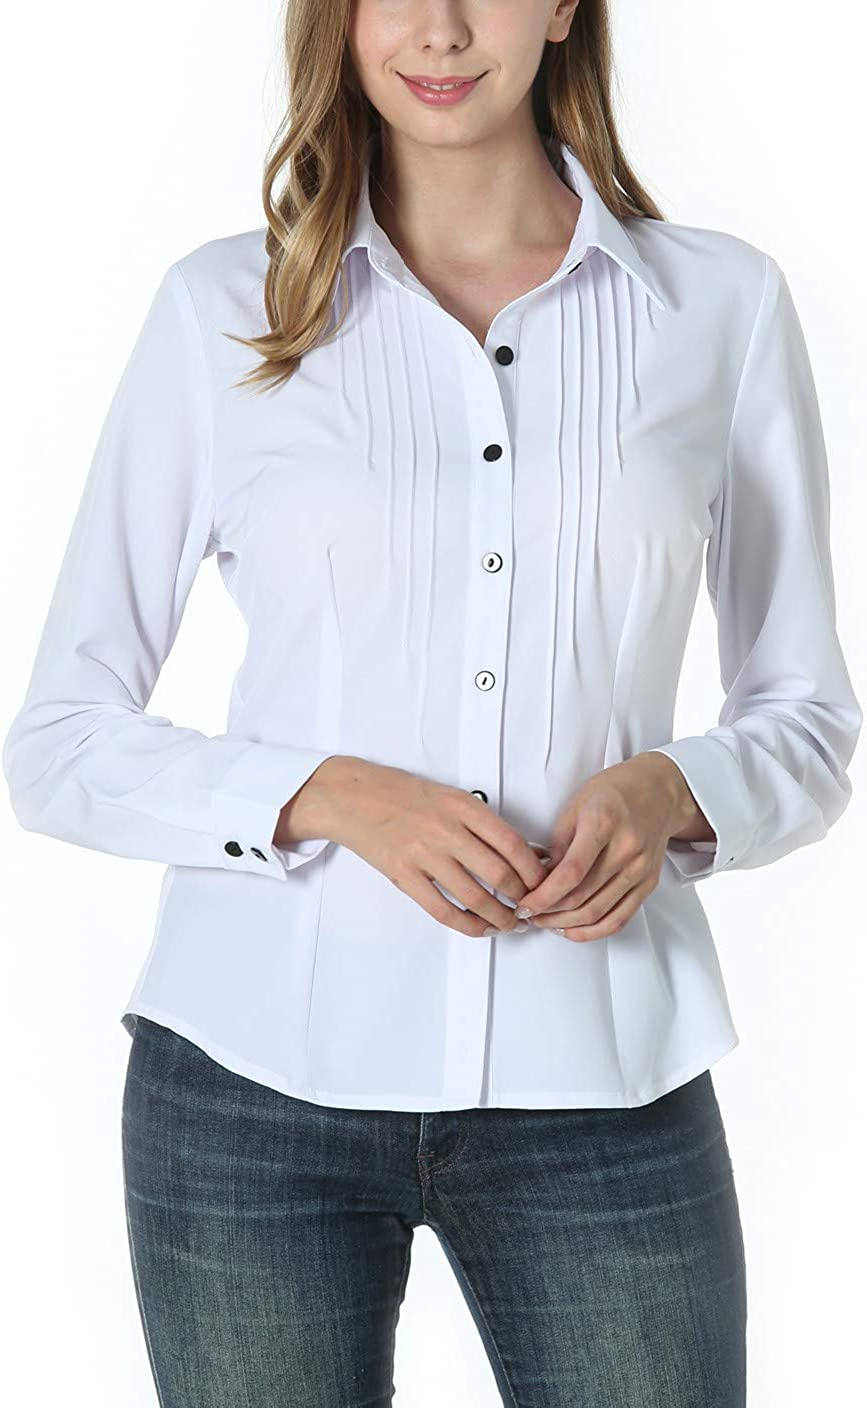 MISS MOLY Women's Long Sleeve White Collar Shirt Button Down V Neck Ruched Front Tops Work Blouse for Office and Casual